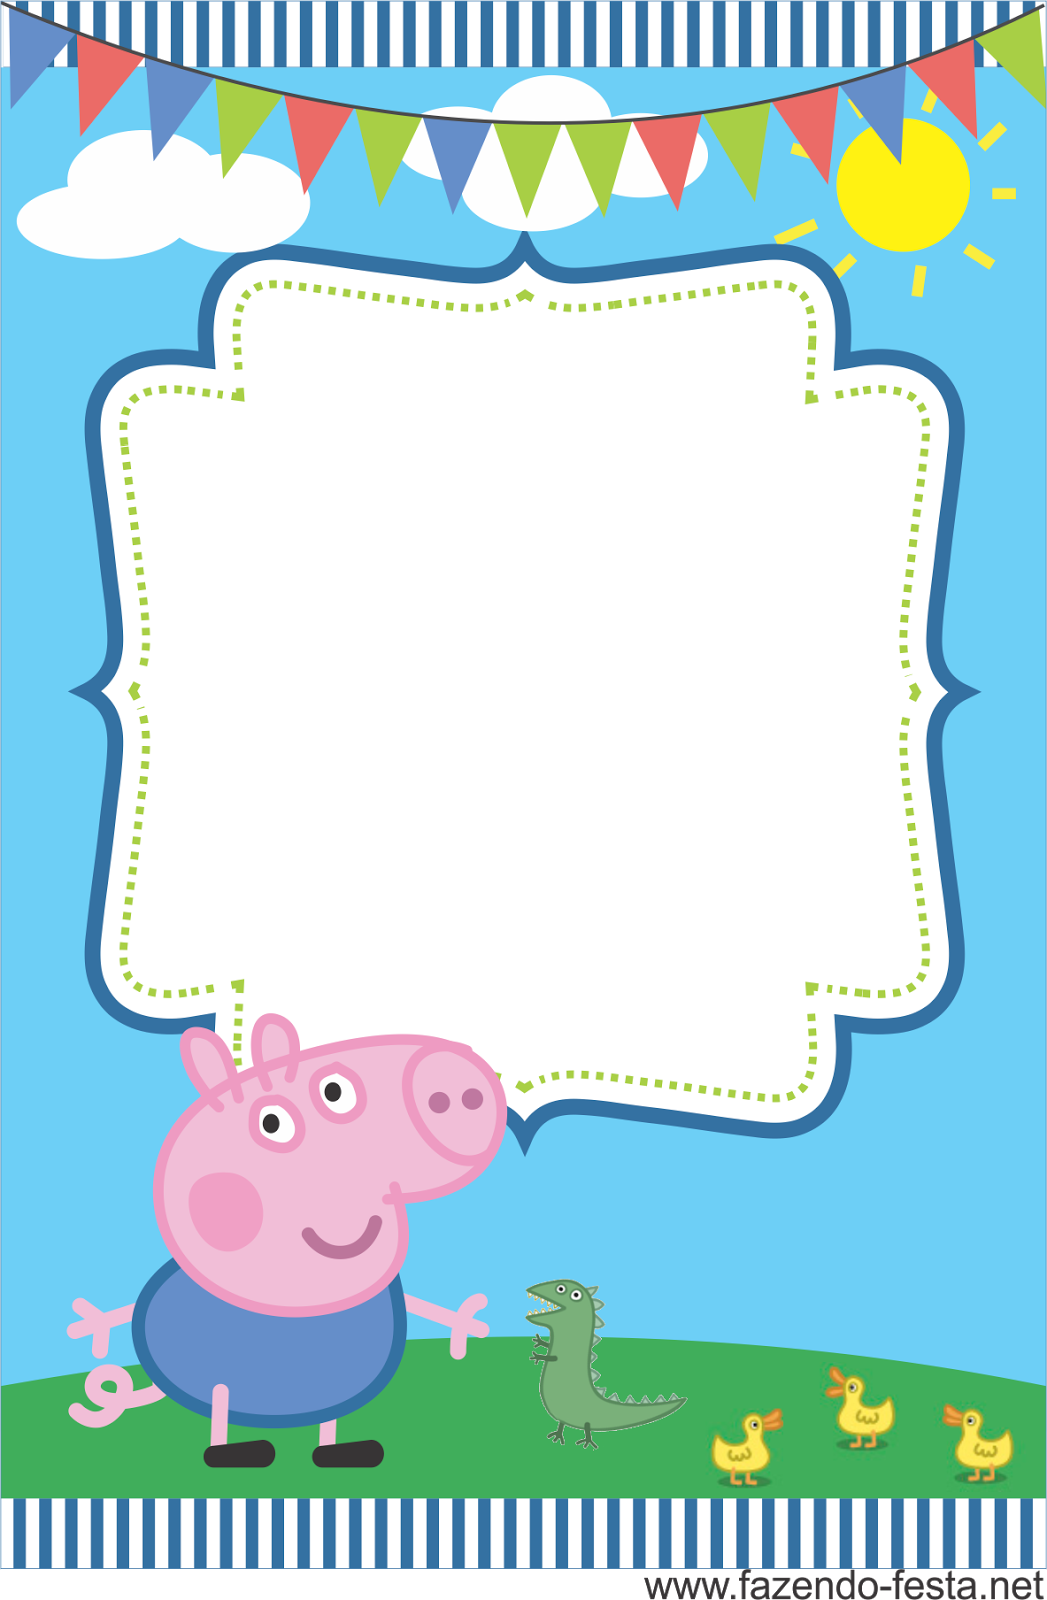 Convites gratuitos da Peppa Pig | George pig, Pig party and Pig ...